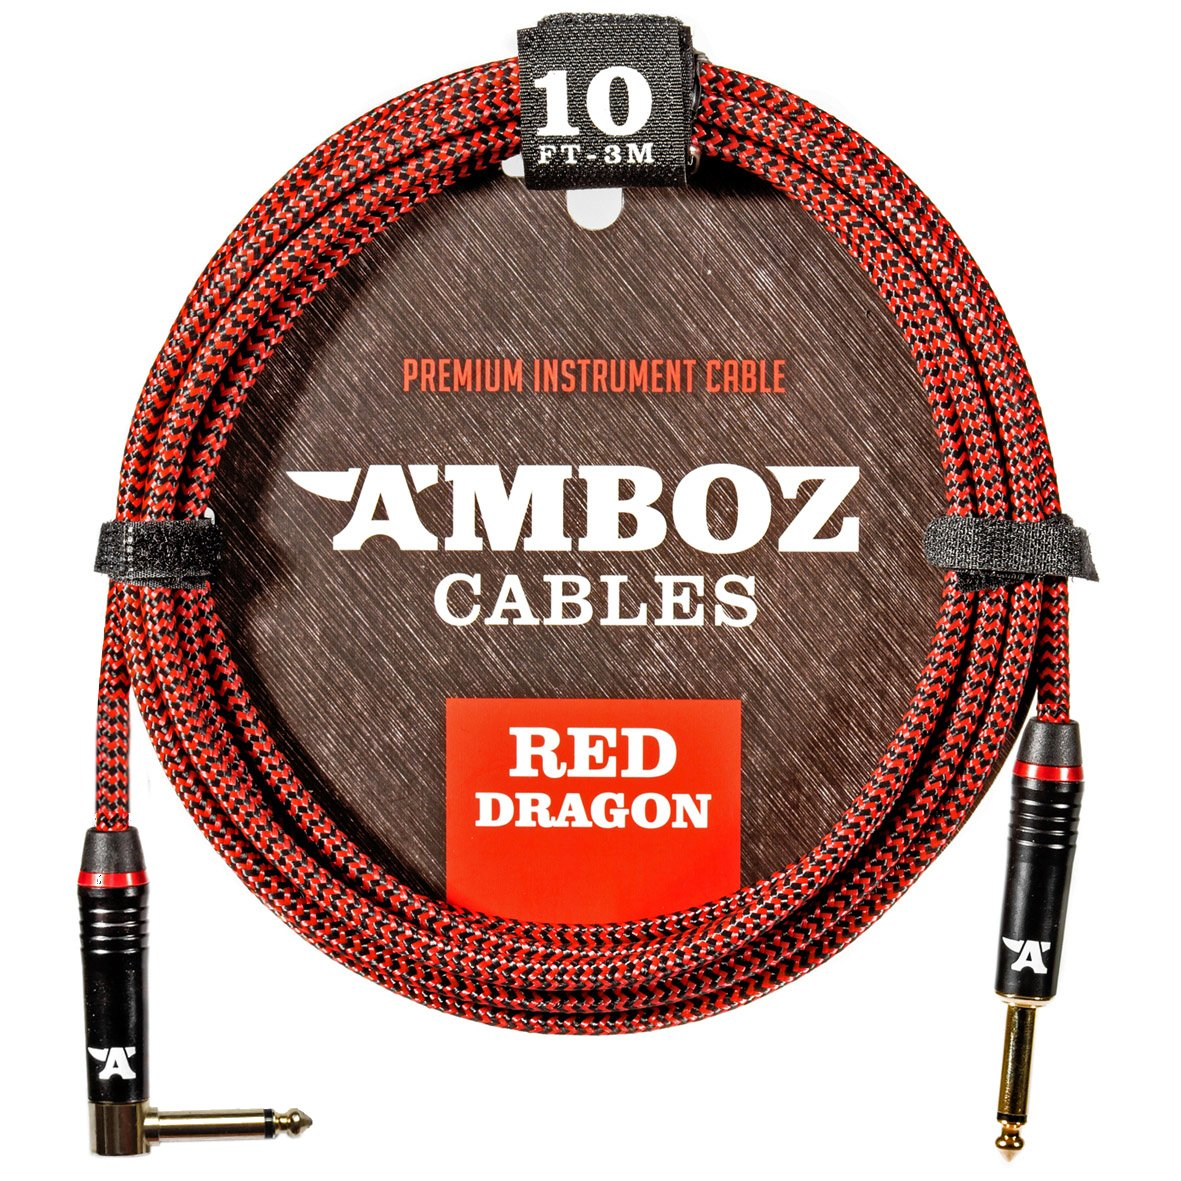 Red Dragon Guitar Cable - Sturdy & Ultra Flexible Instrument Cable For Electric & Bass Guitar Players - Super Noiseless, Used By Amateurs & Pros Alike - 10 FT/straight-rect./Get Ready To Rock! by AMBOZ CABLES